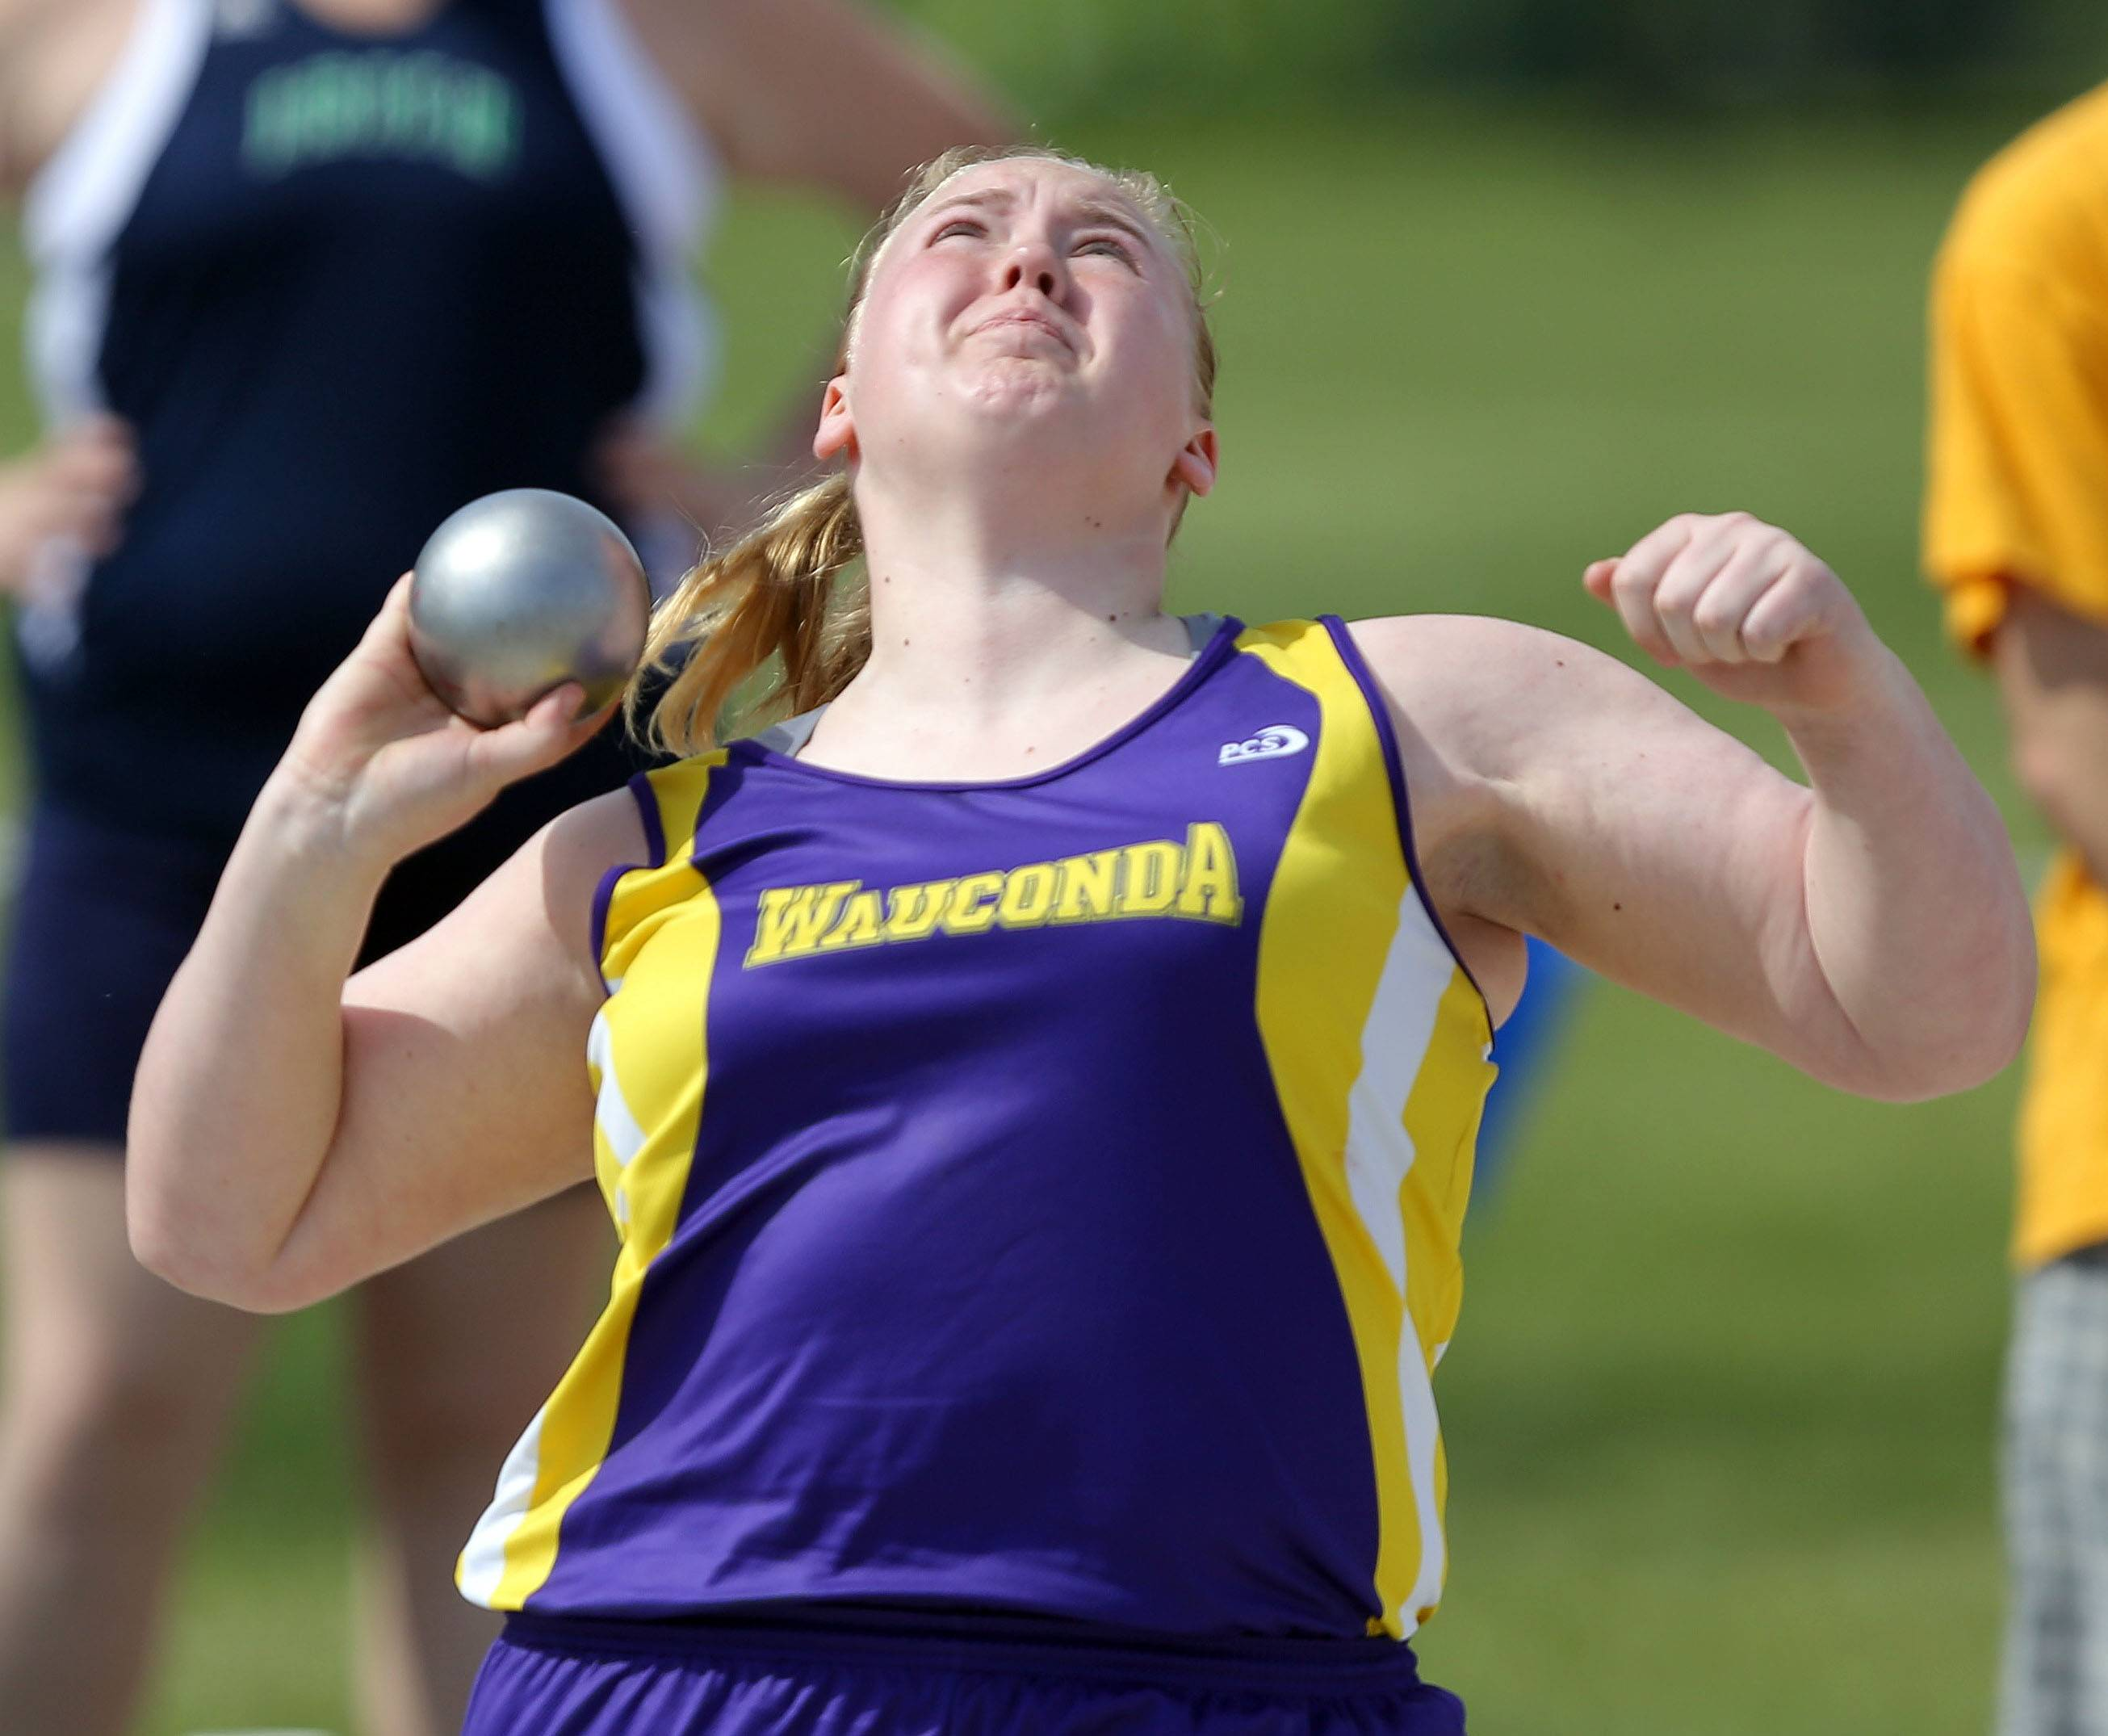 Wauconda's Christina Meinhardt competes in the class 2A shot put during the girls track and field state finals at Eastern Illinois University in Charleston Saturday.